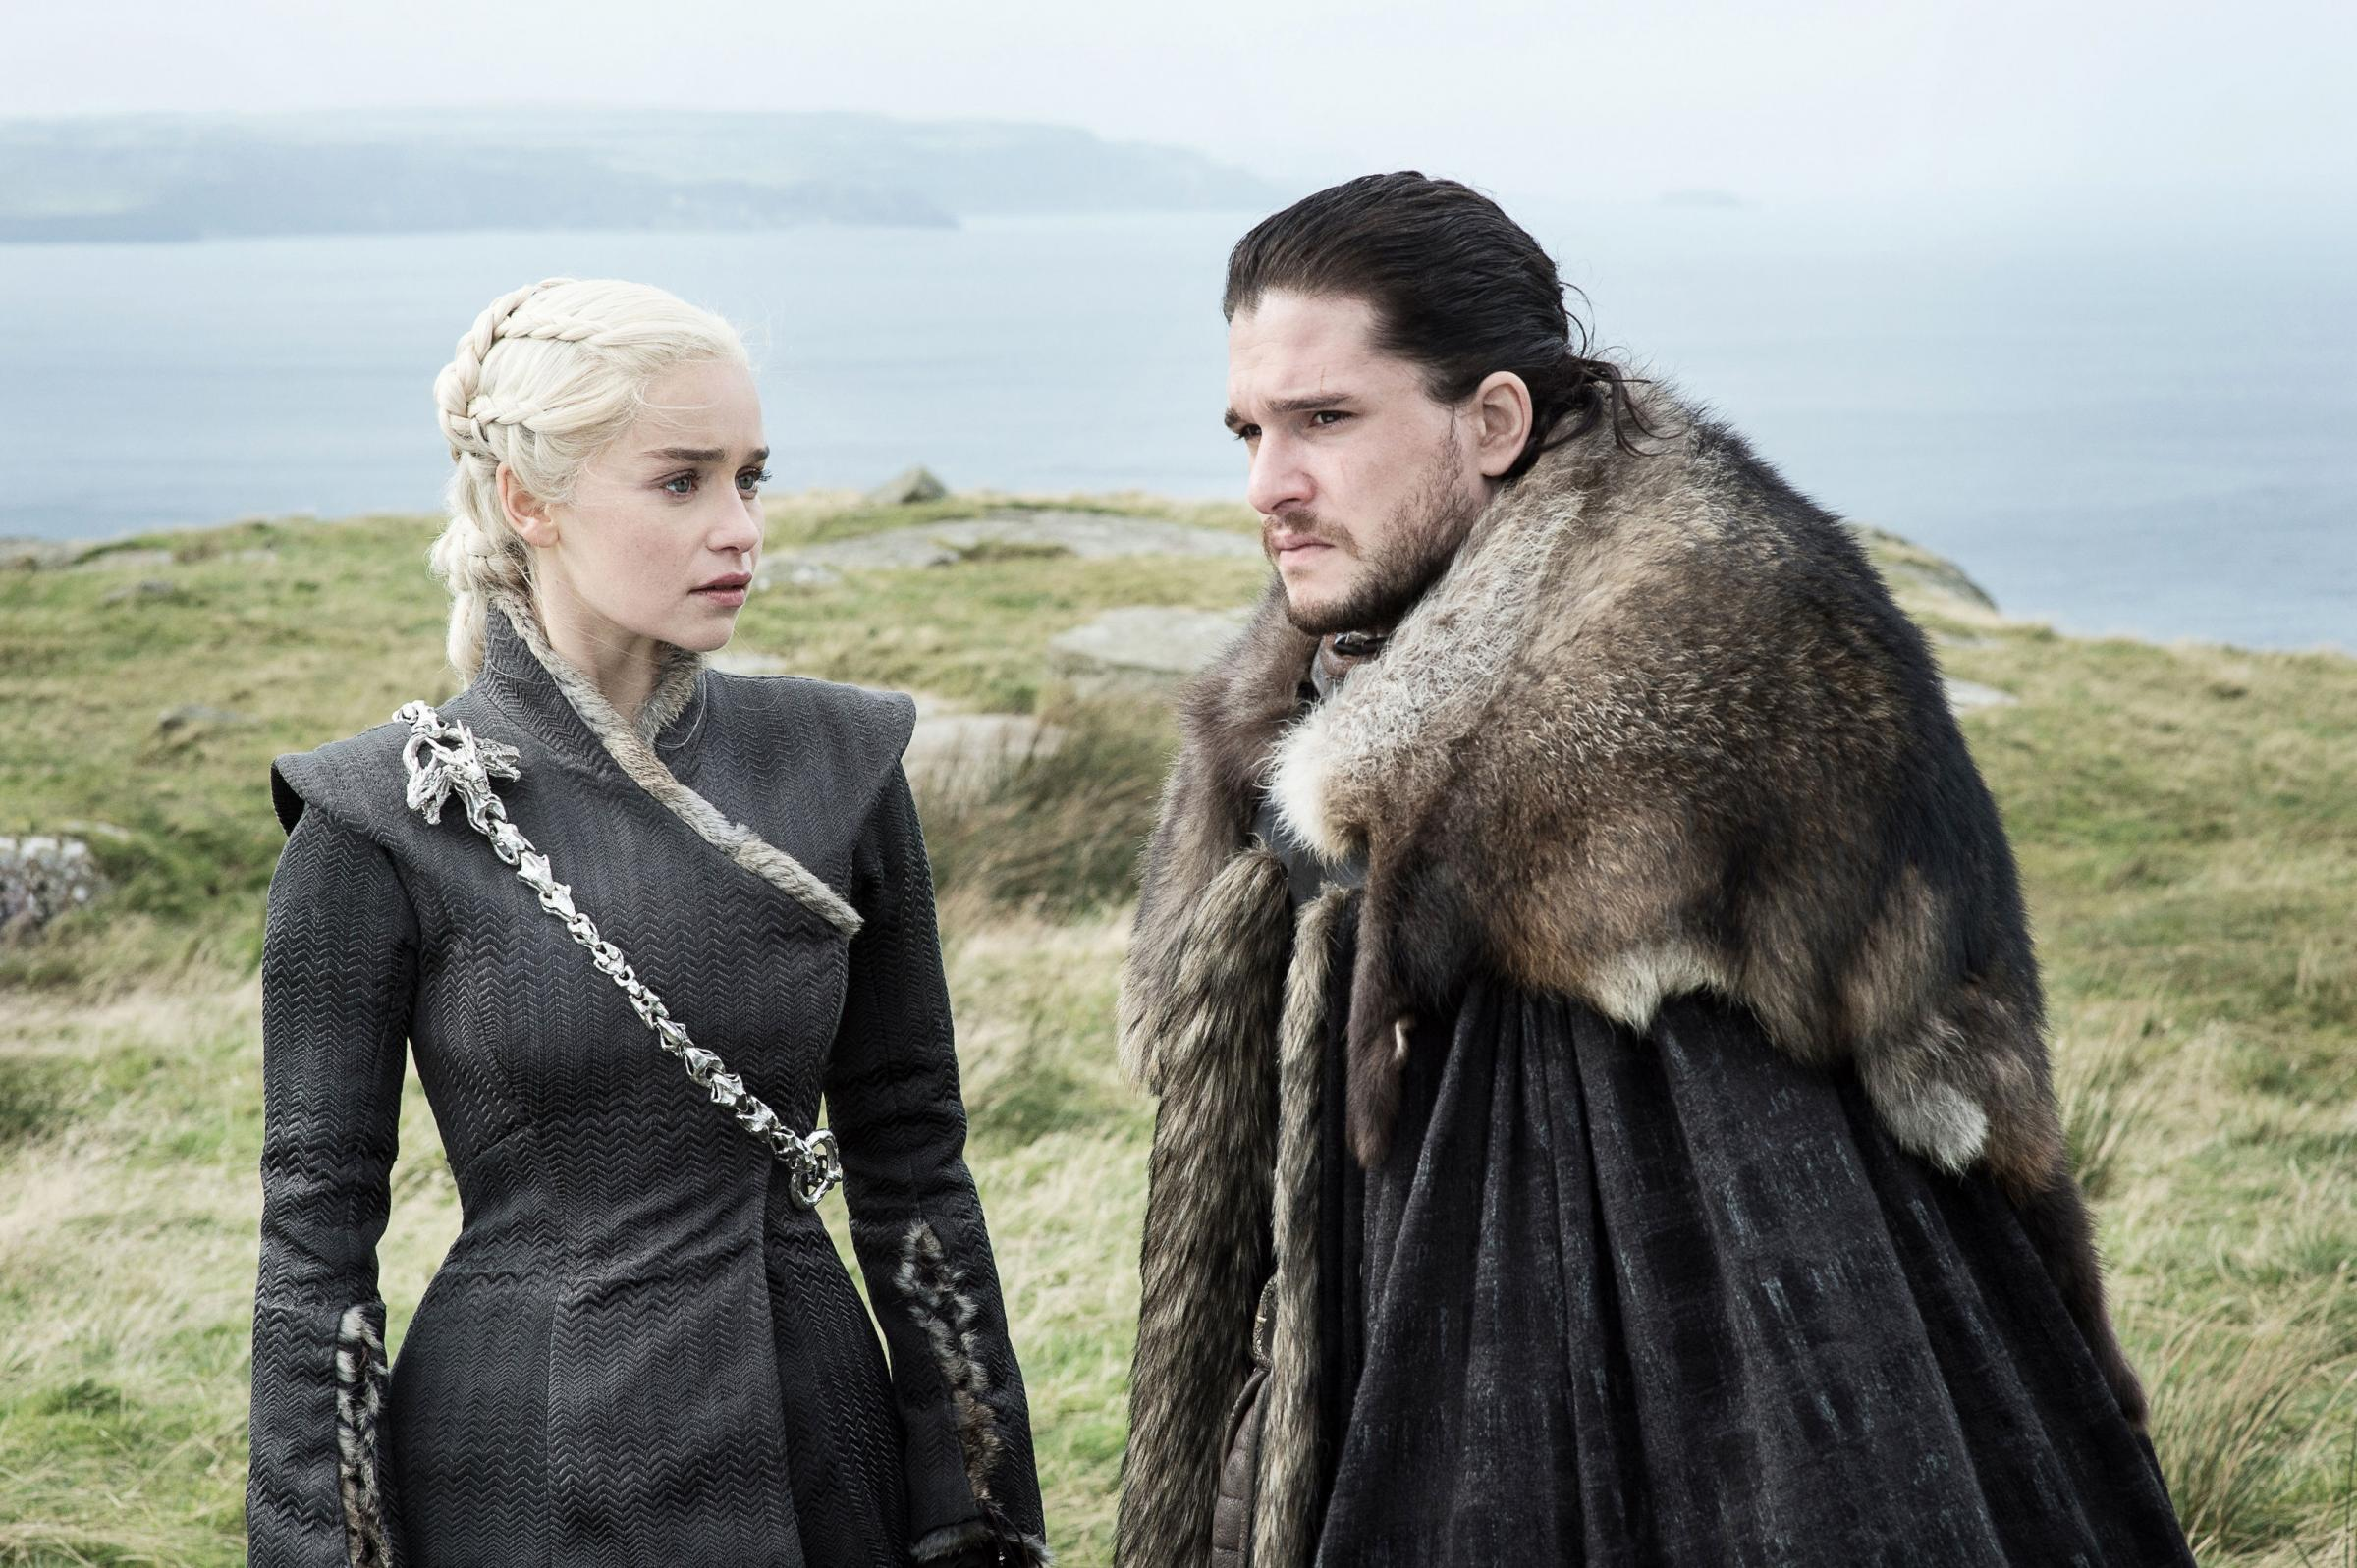 HEADLINES: Kit Harington as Jon Snow in Game of Thrones, pictured with co-star Emilia Clarke as Daenerys Targaryen. Picture: HBO/PA.